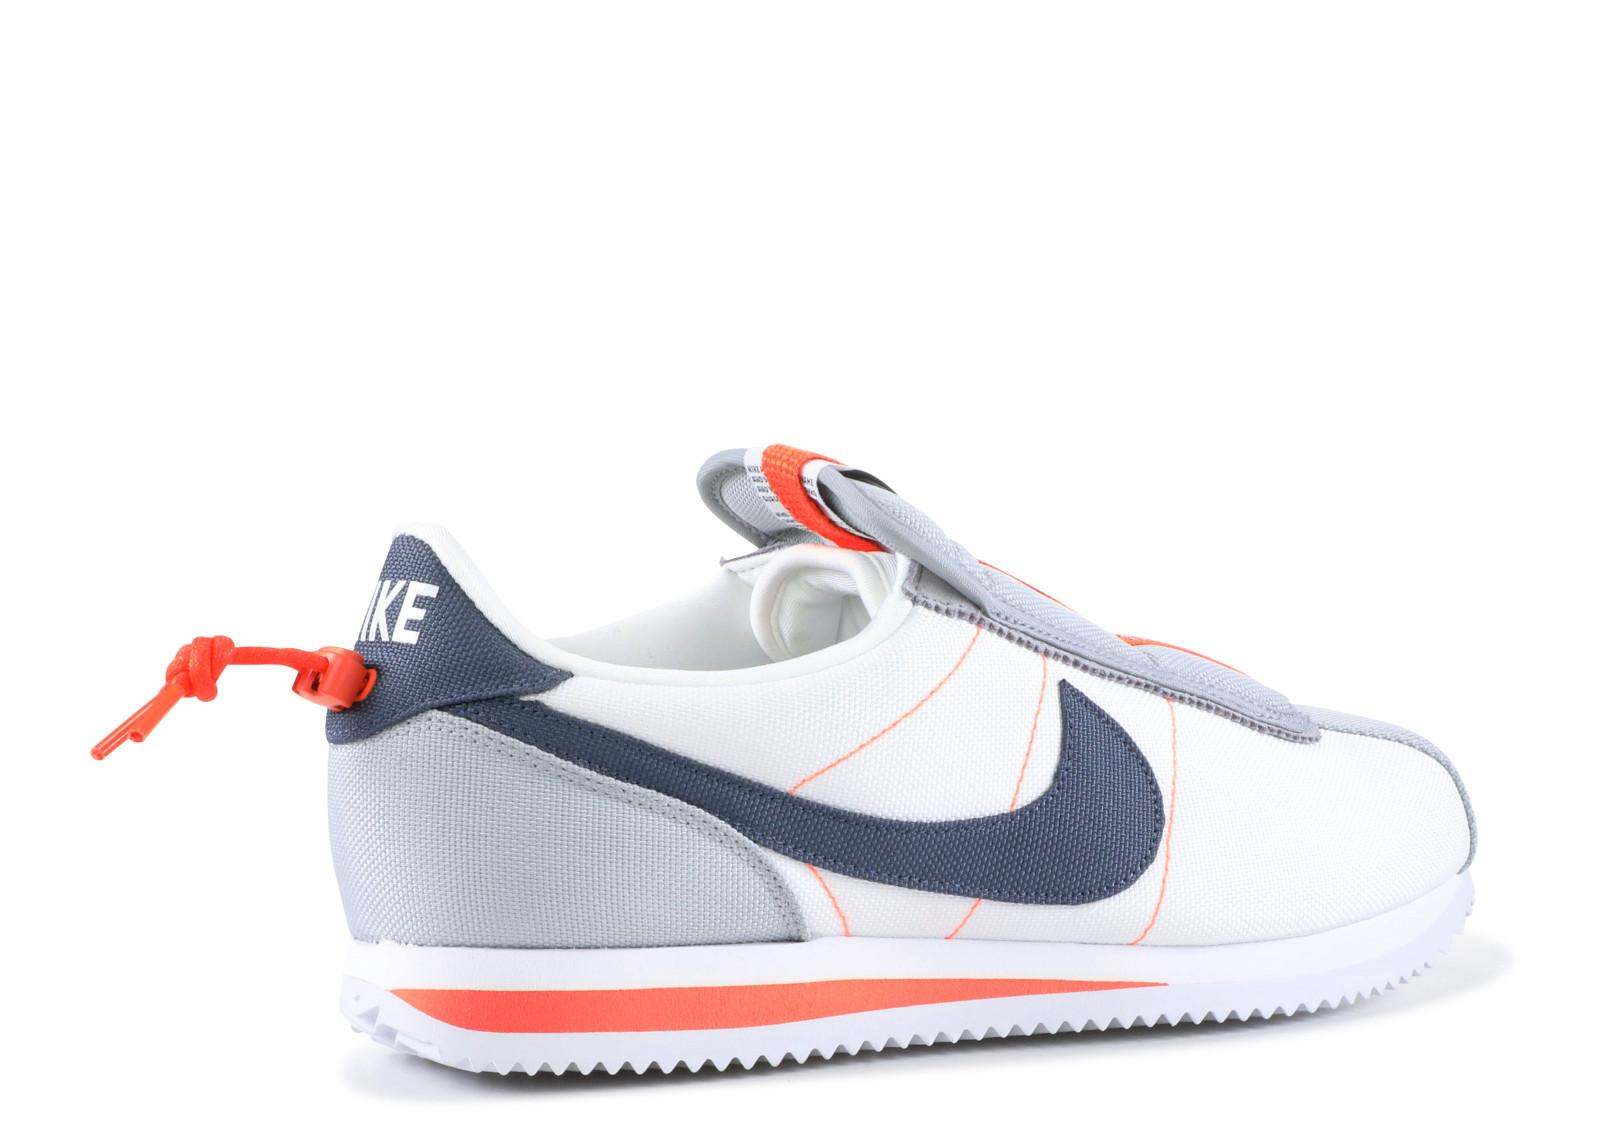 new product 61162 5a66a Cortez Kenny 4 House Shoes (OEM) Premium quality